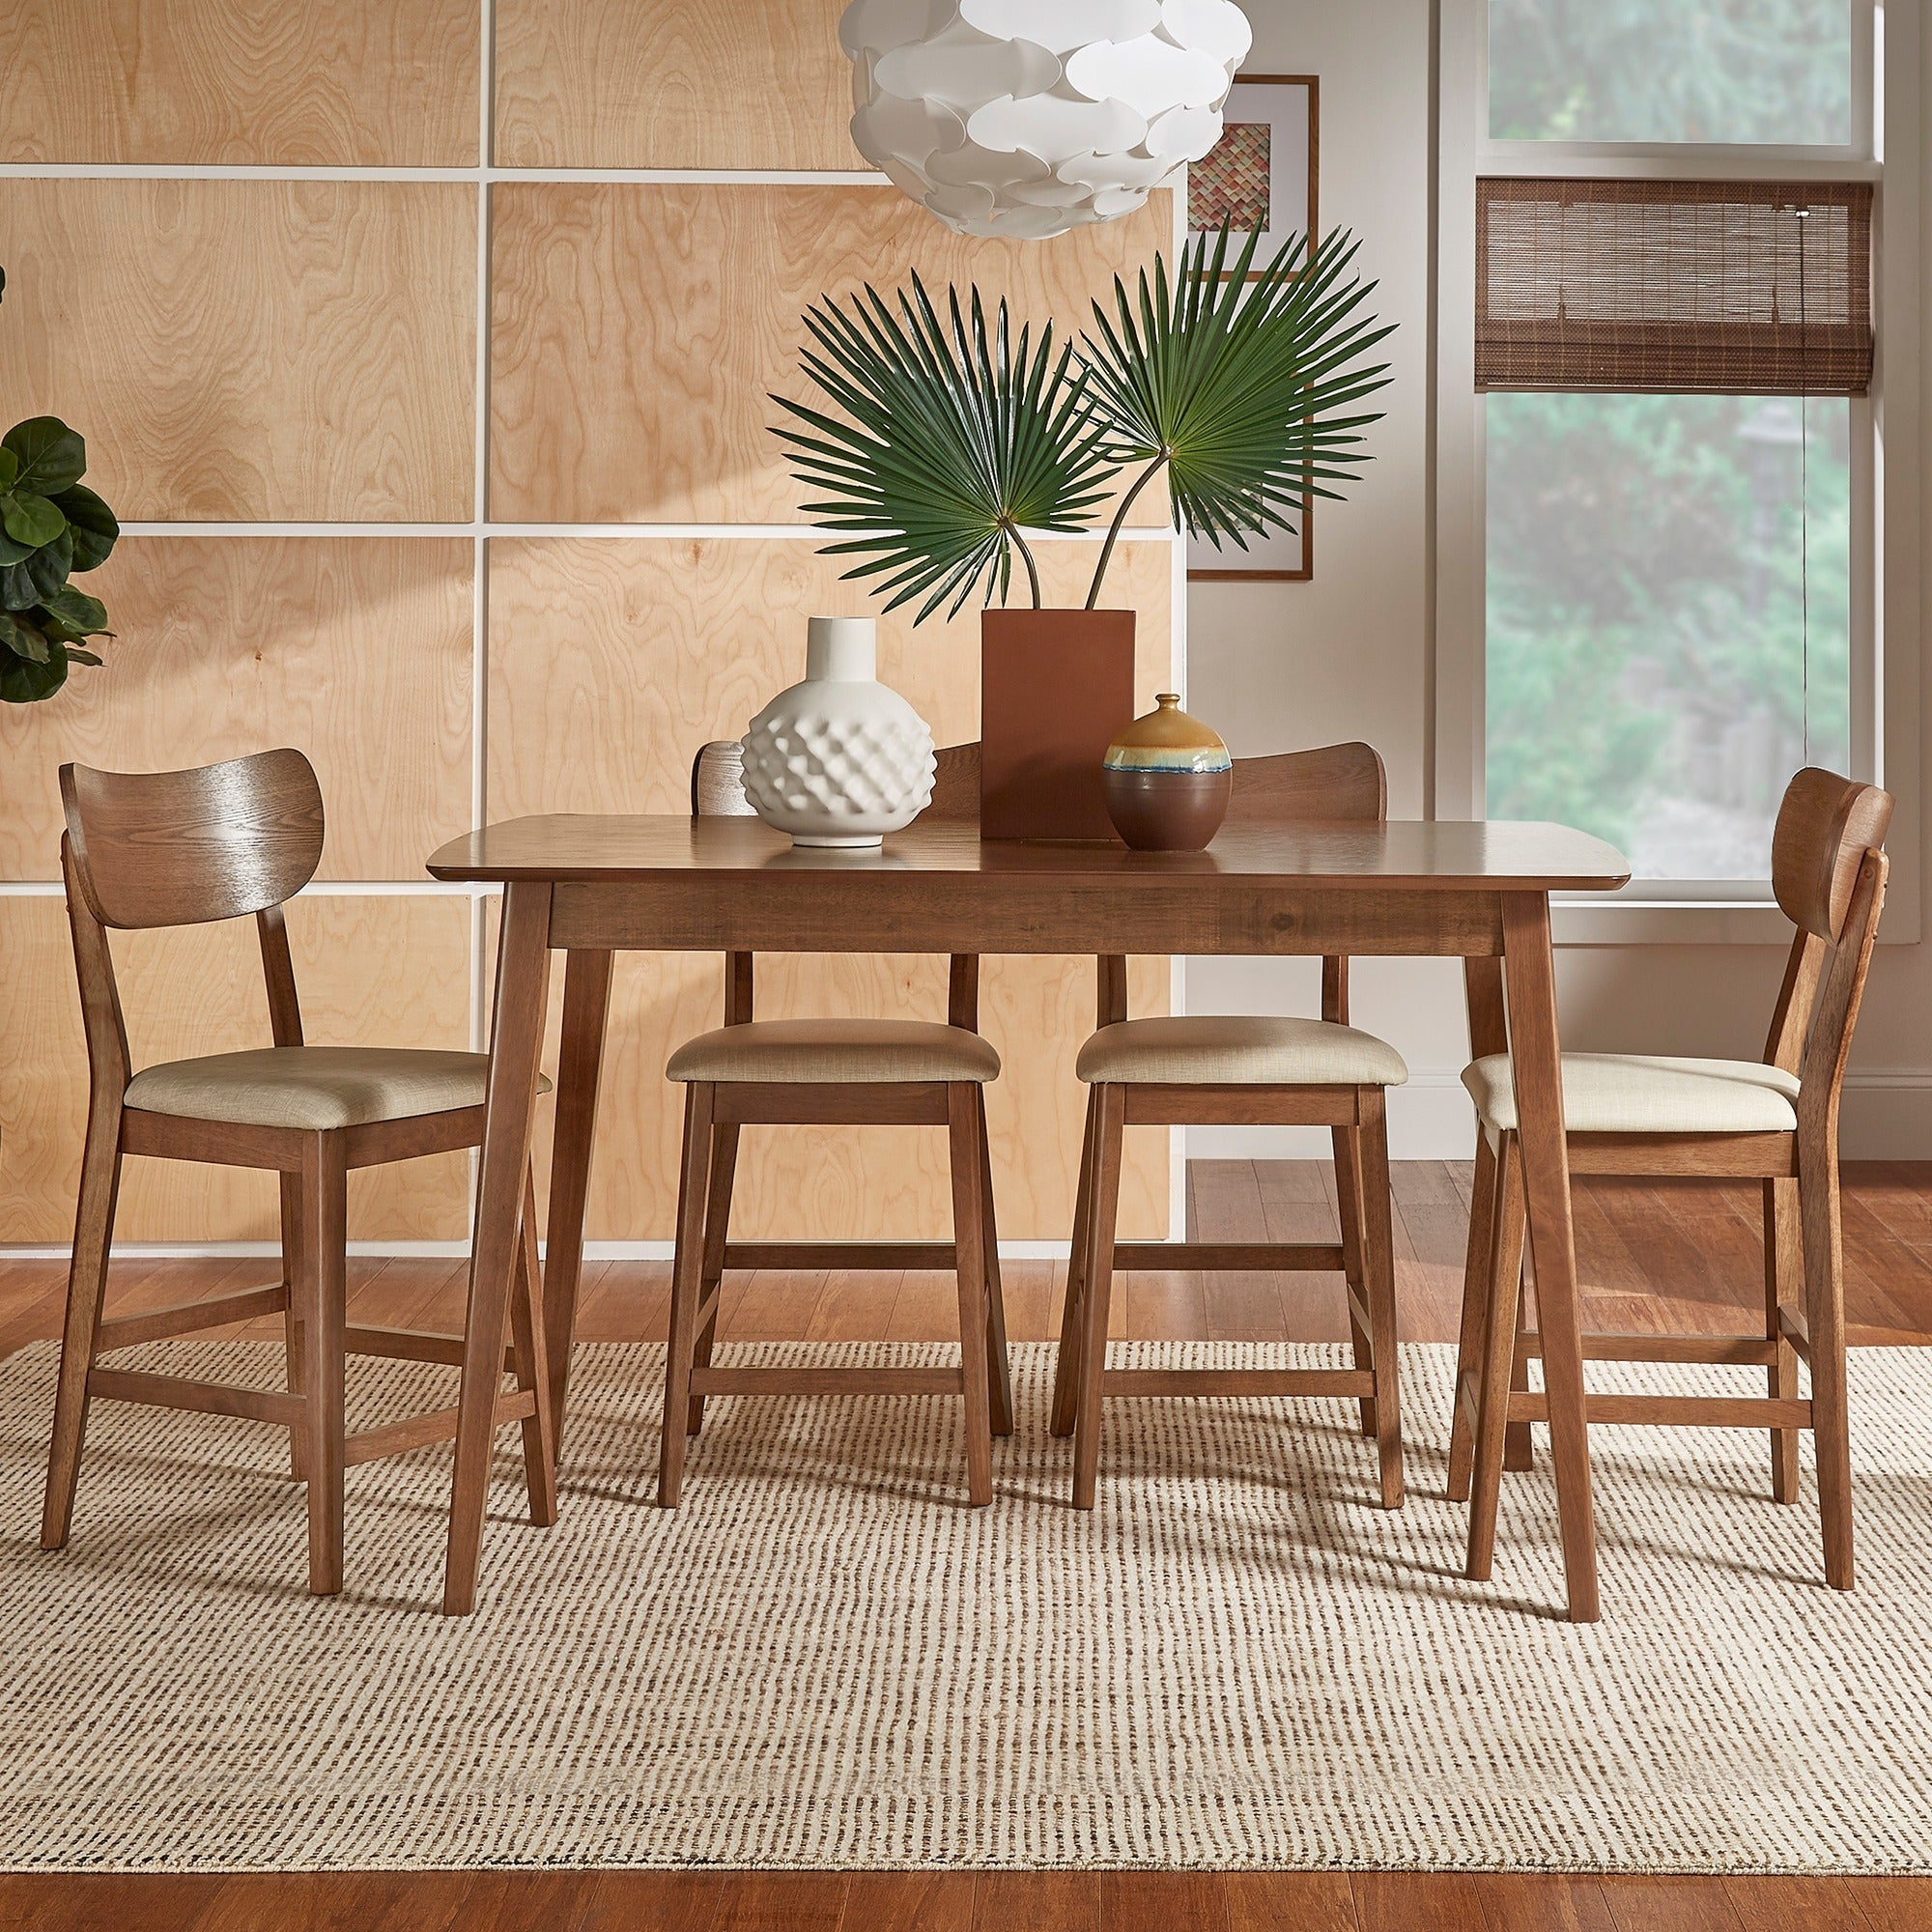 Penelope Danish Modern Tapered Leg Counter Height Chair (Set Of 2) Inspire Q Modern Pertaining To Latest Penelope 3 Piece Counter Height Wood Dining Sets (View 5 of 20)